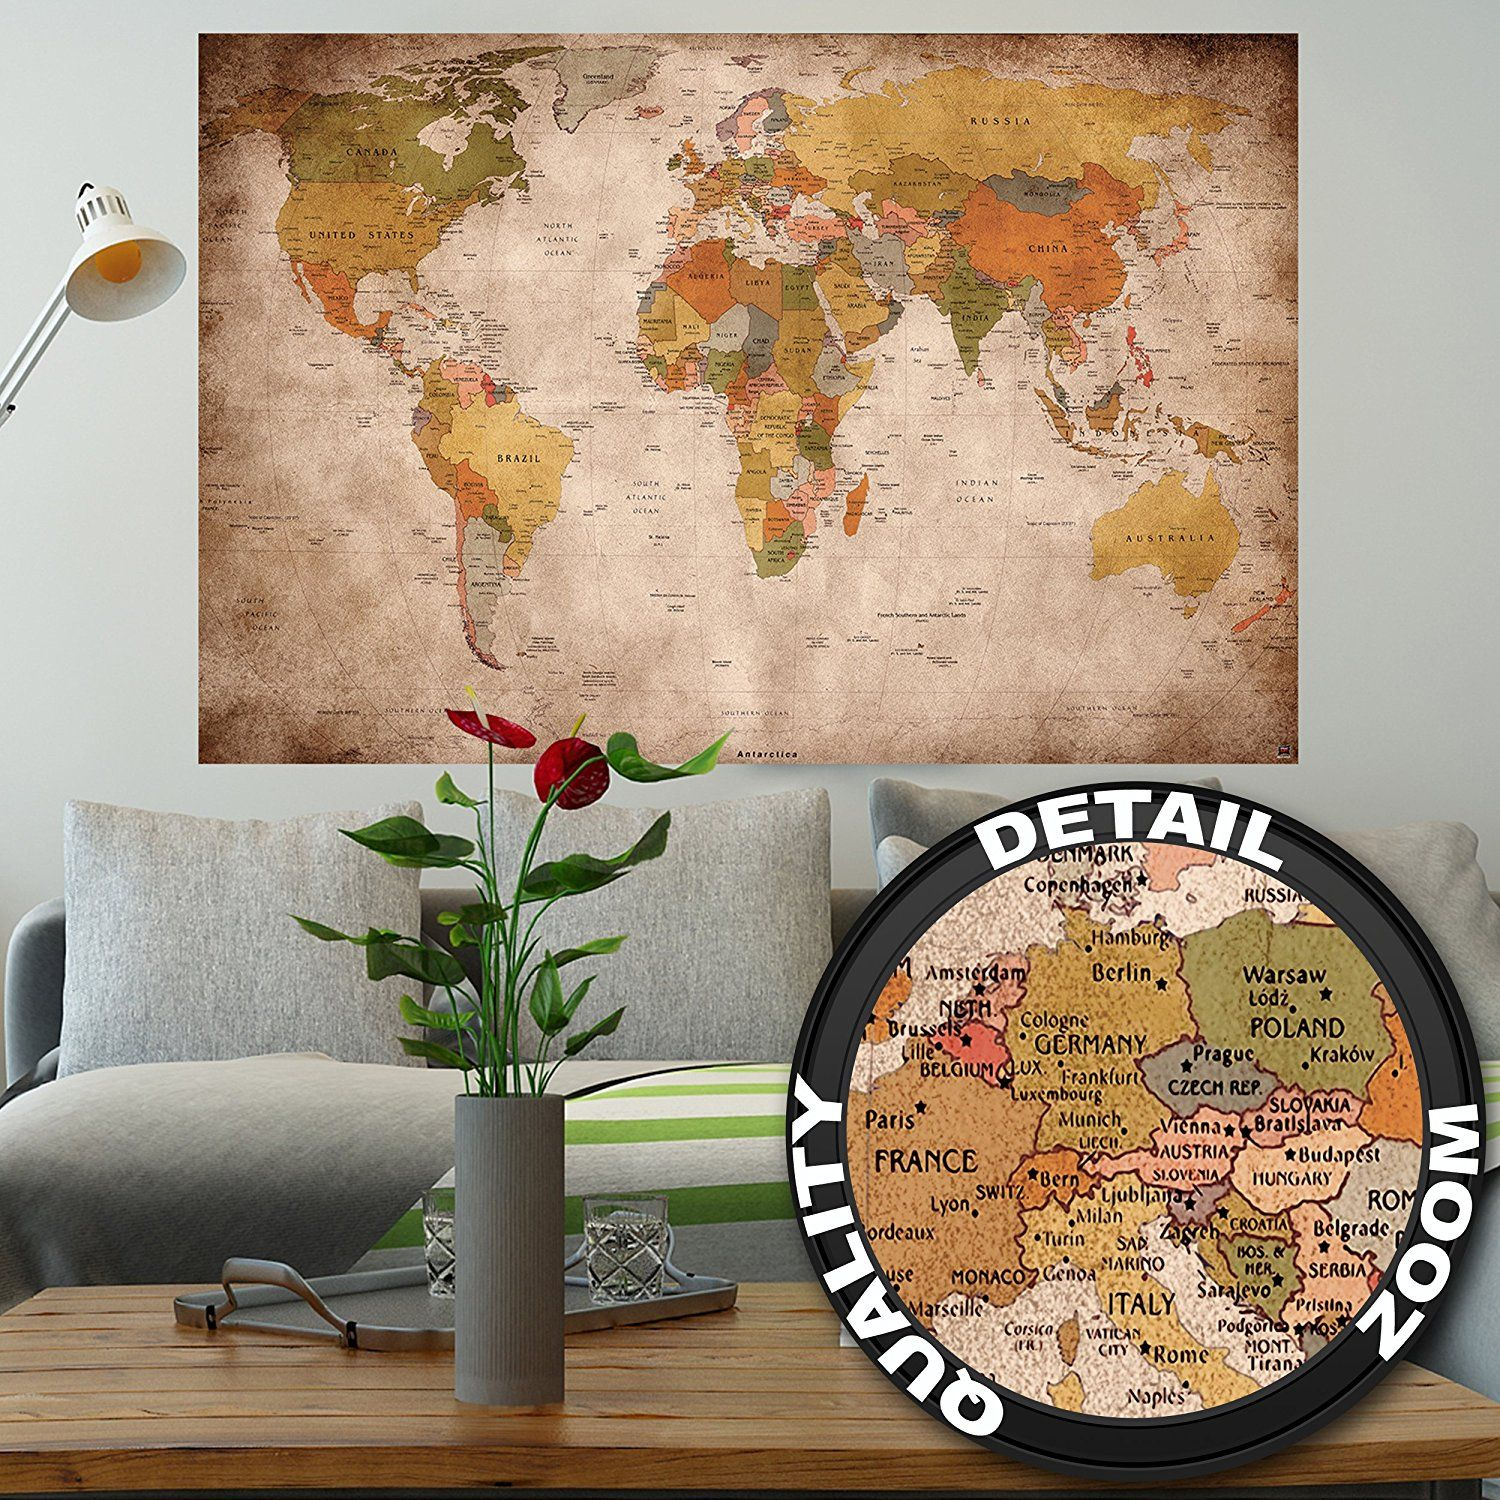 Amazon poster used look wall picture decoration globe amazon poster used look wall picture decoration globe continents atlas world map earth geography retro old school vintage map wallposter gumiabroncs Images